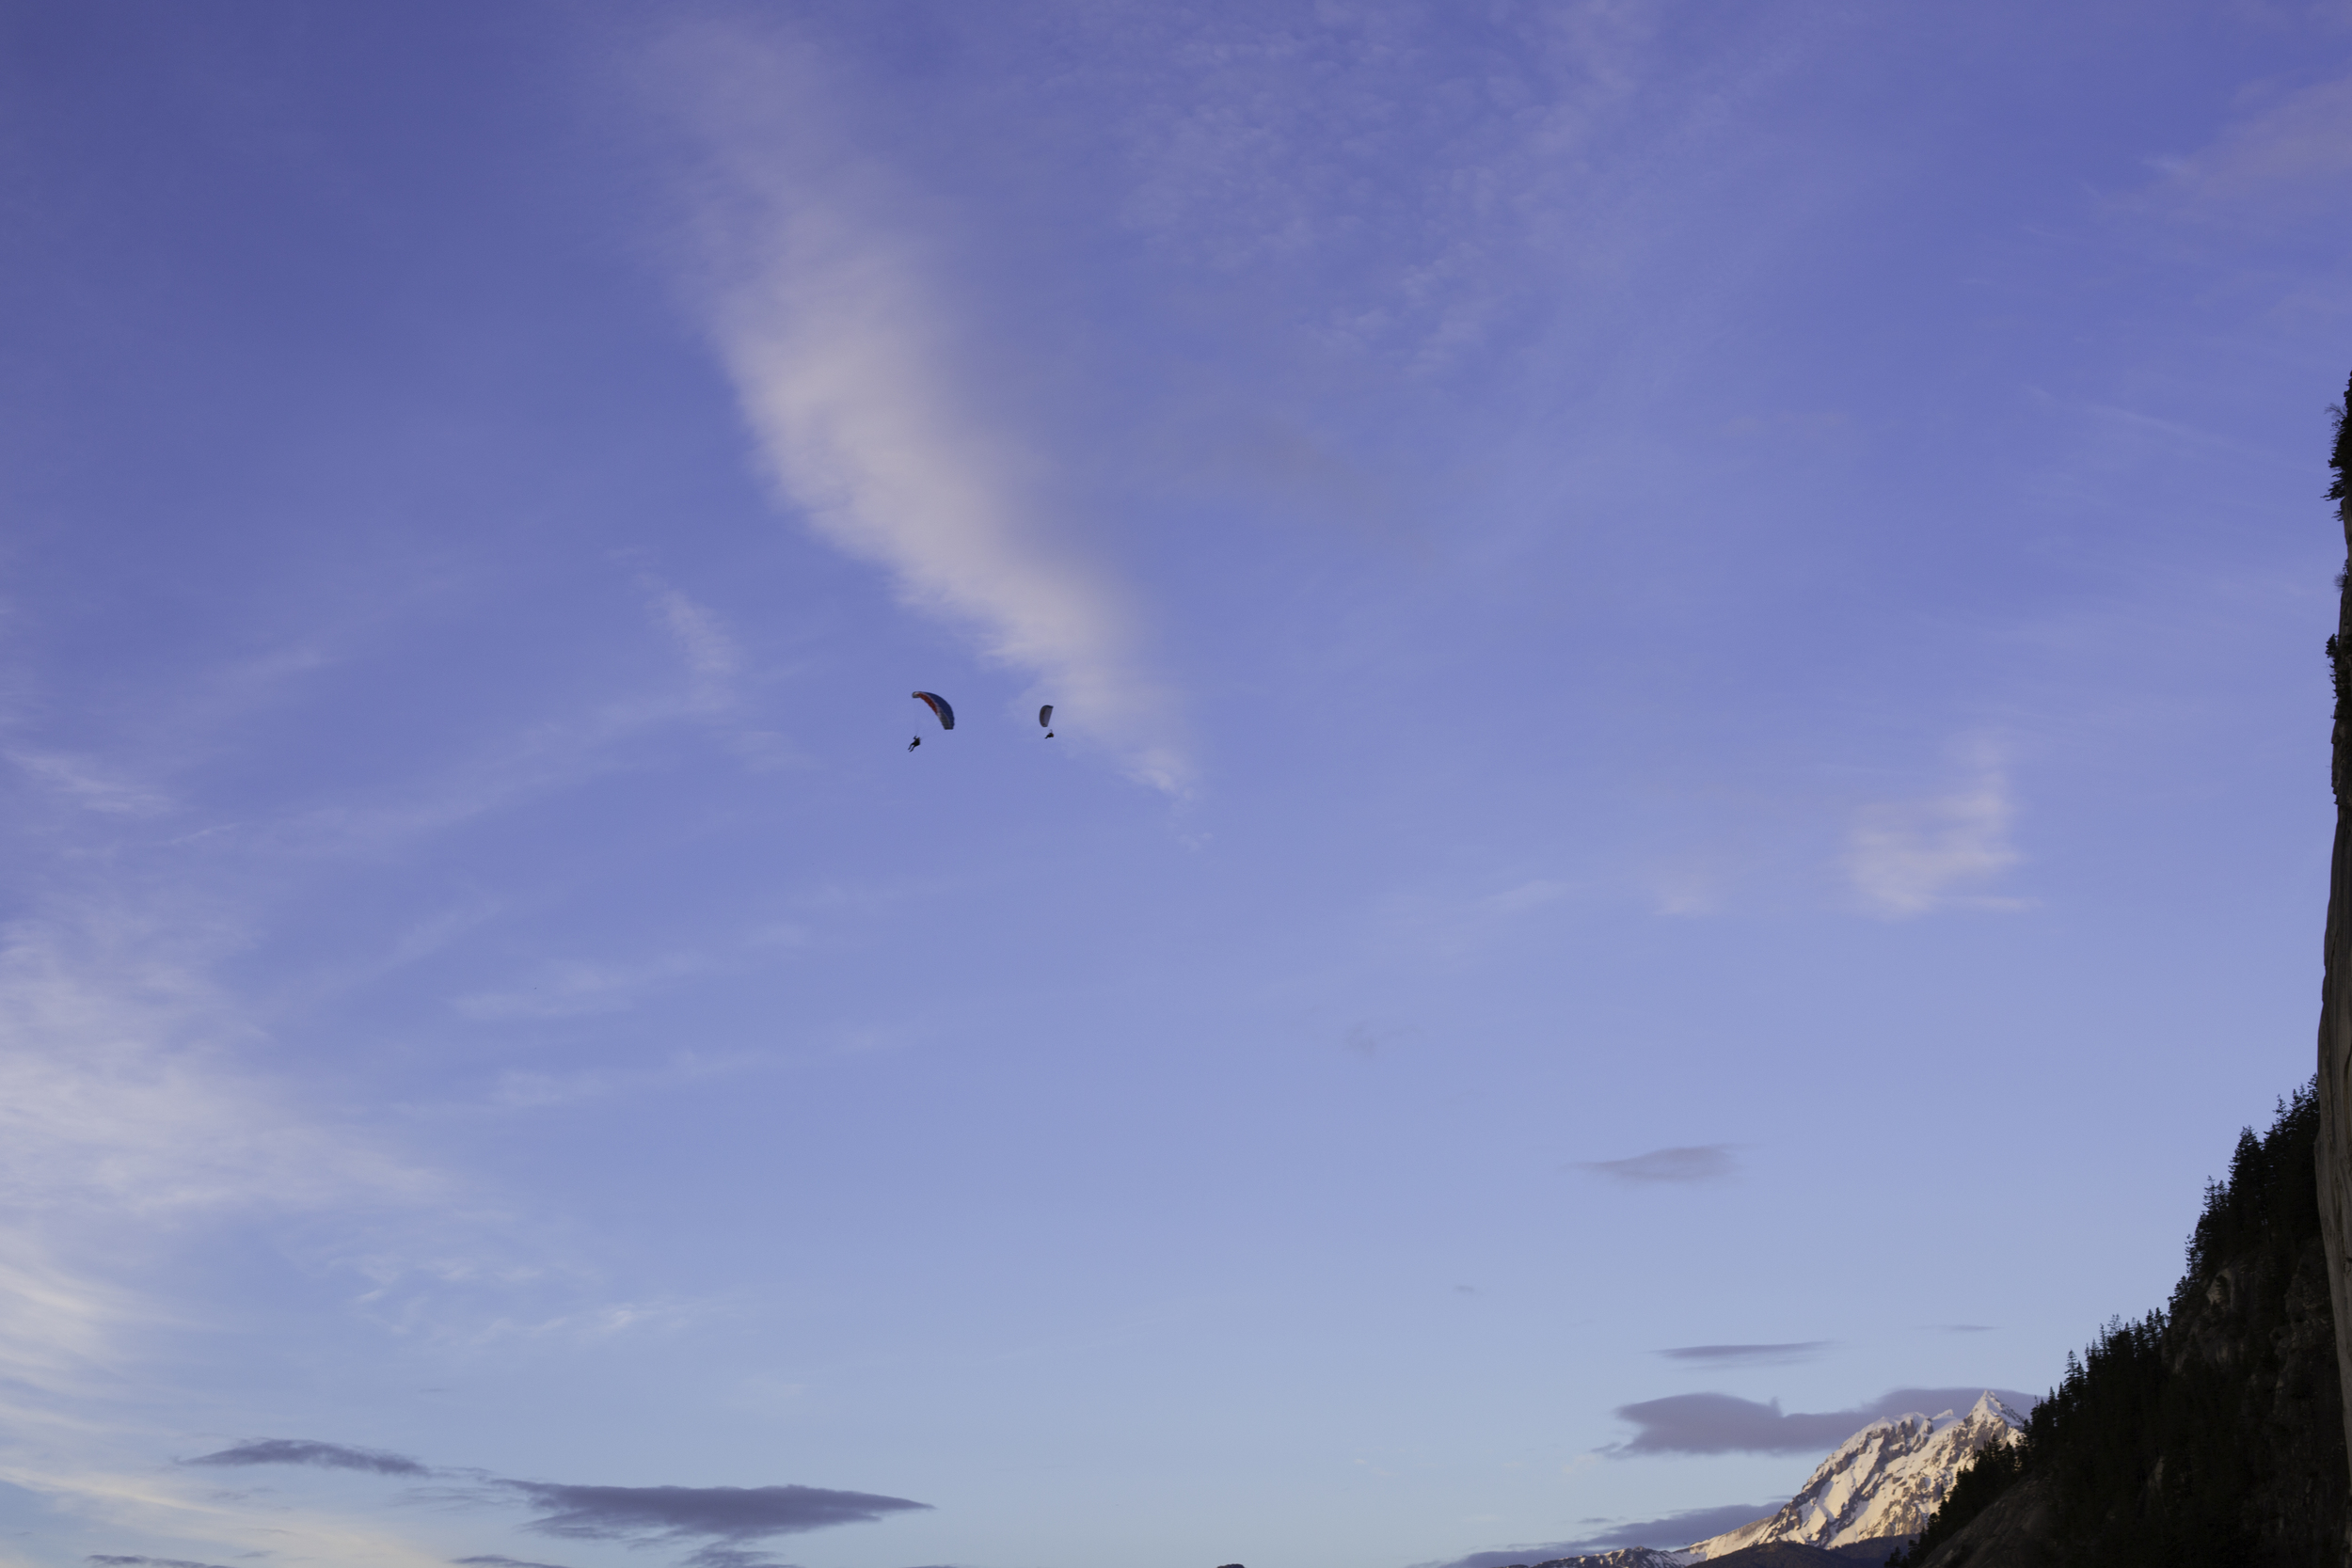 Speed fliers taking to the sunset skies with Atwell and Garibaldi in the background and the chief on the side.